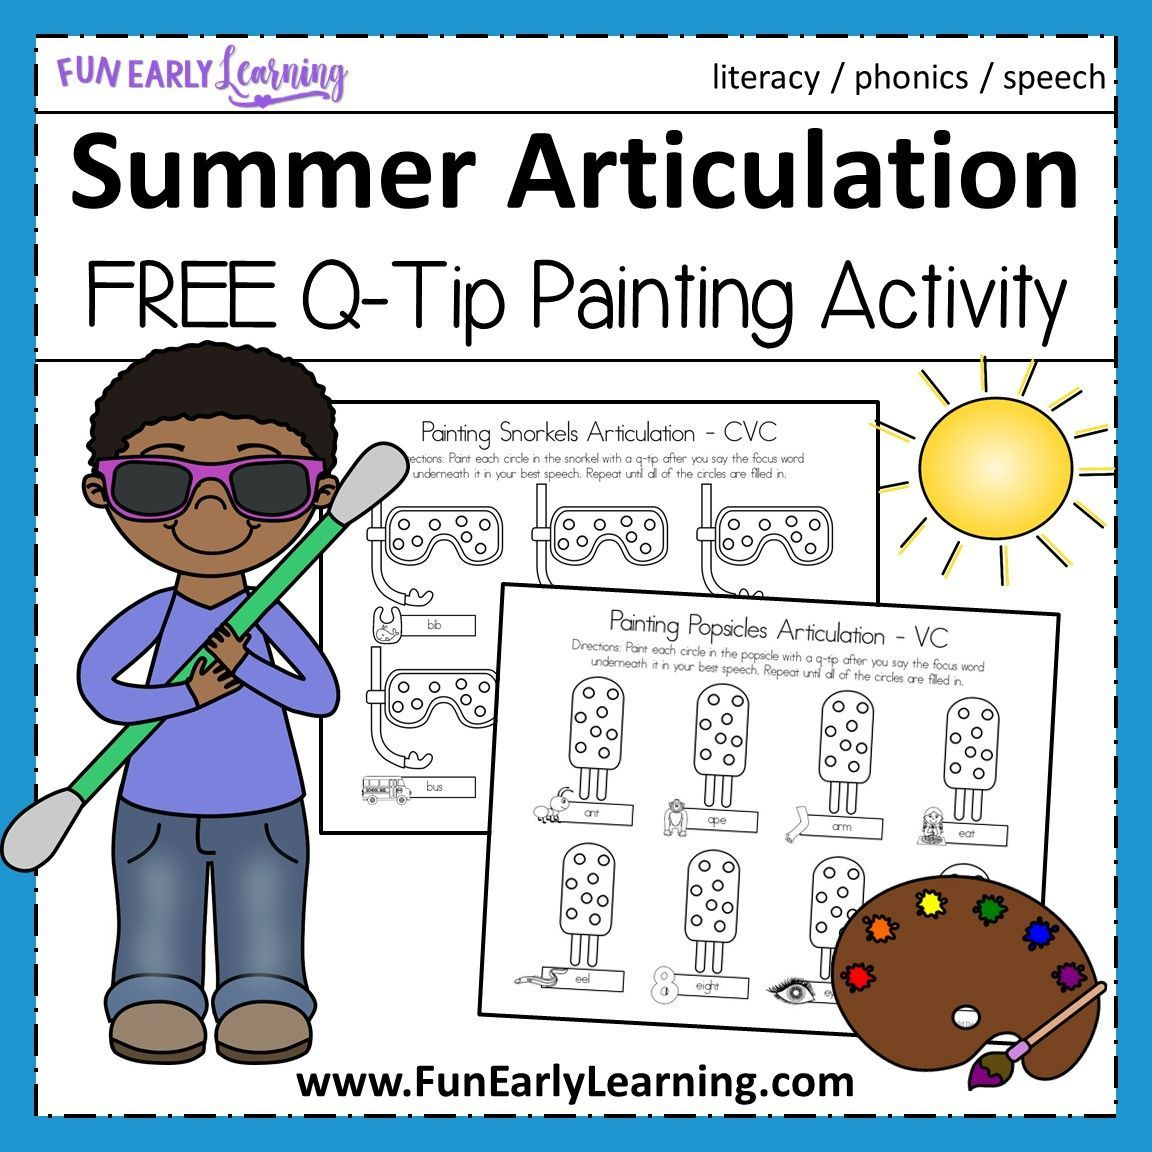 Summer Articulation Q Tip Painting